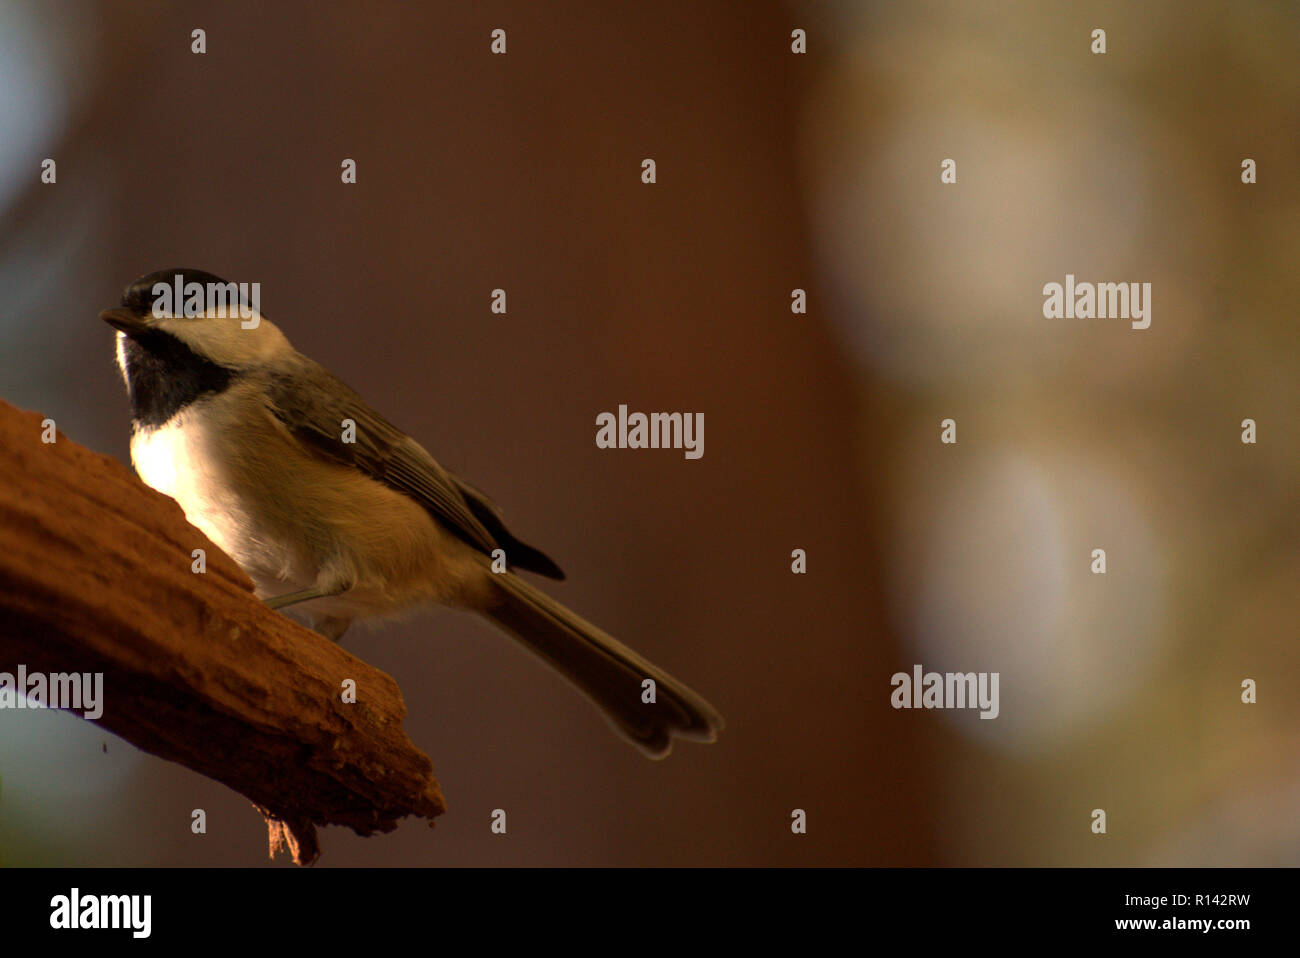 Elegant little Carolina Chickadee perched proudly on a tree branch in the forest (Poecile carolinensis) - Stock Image